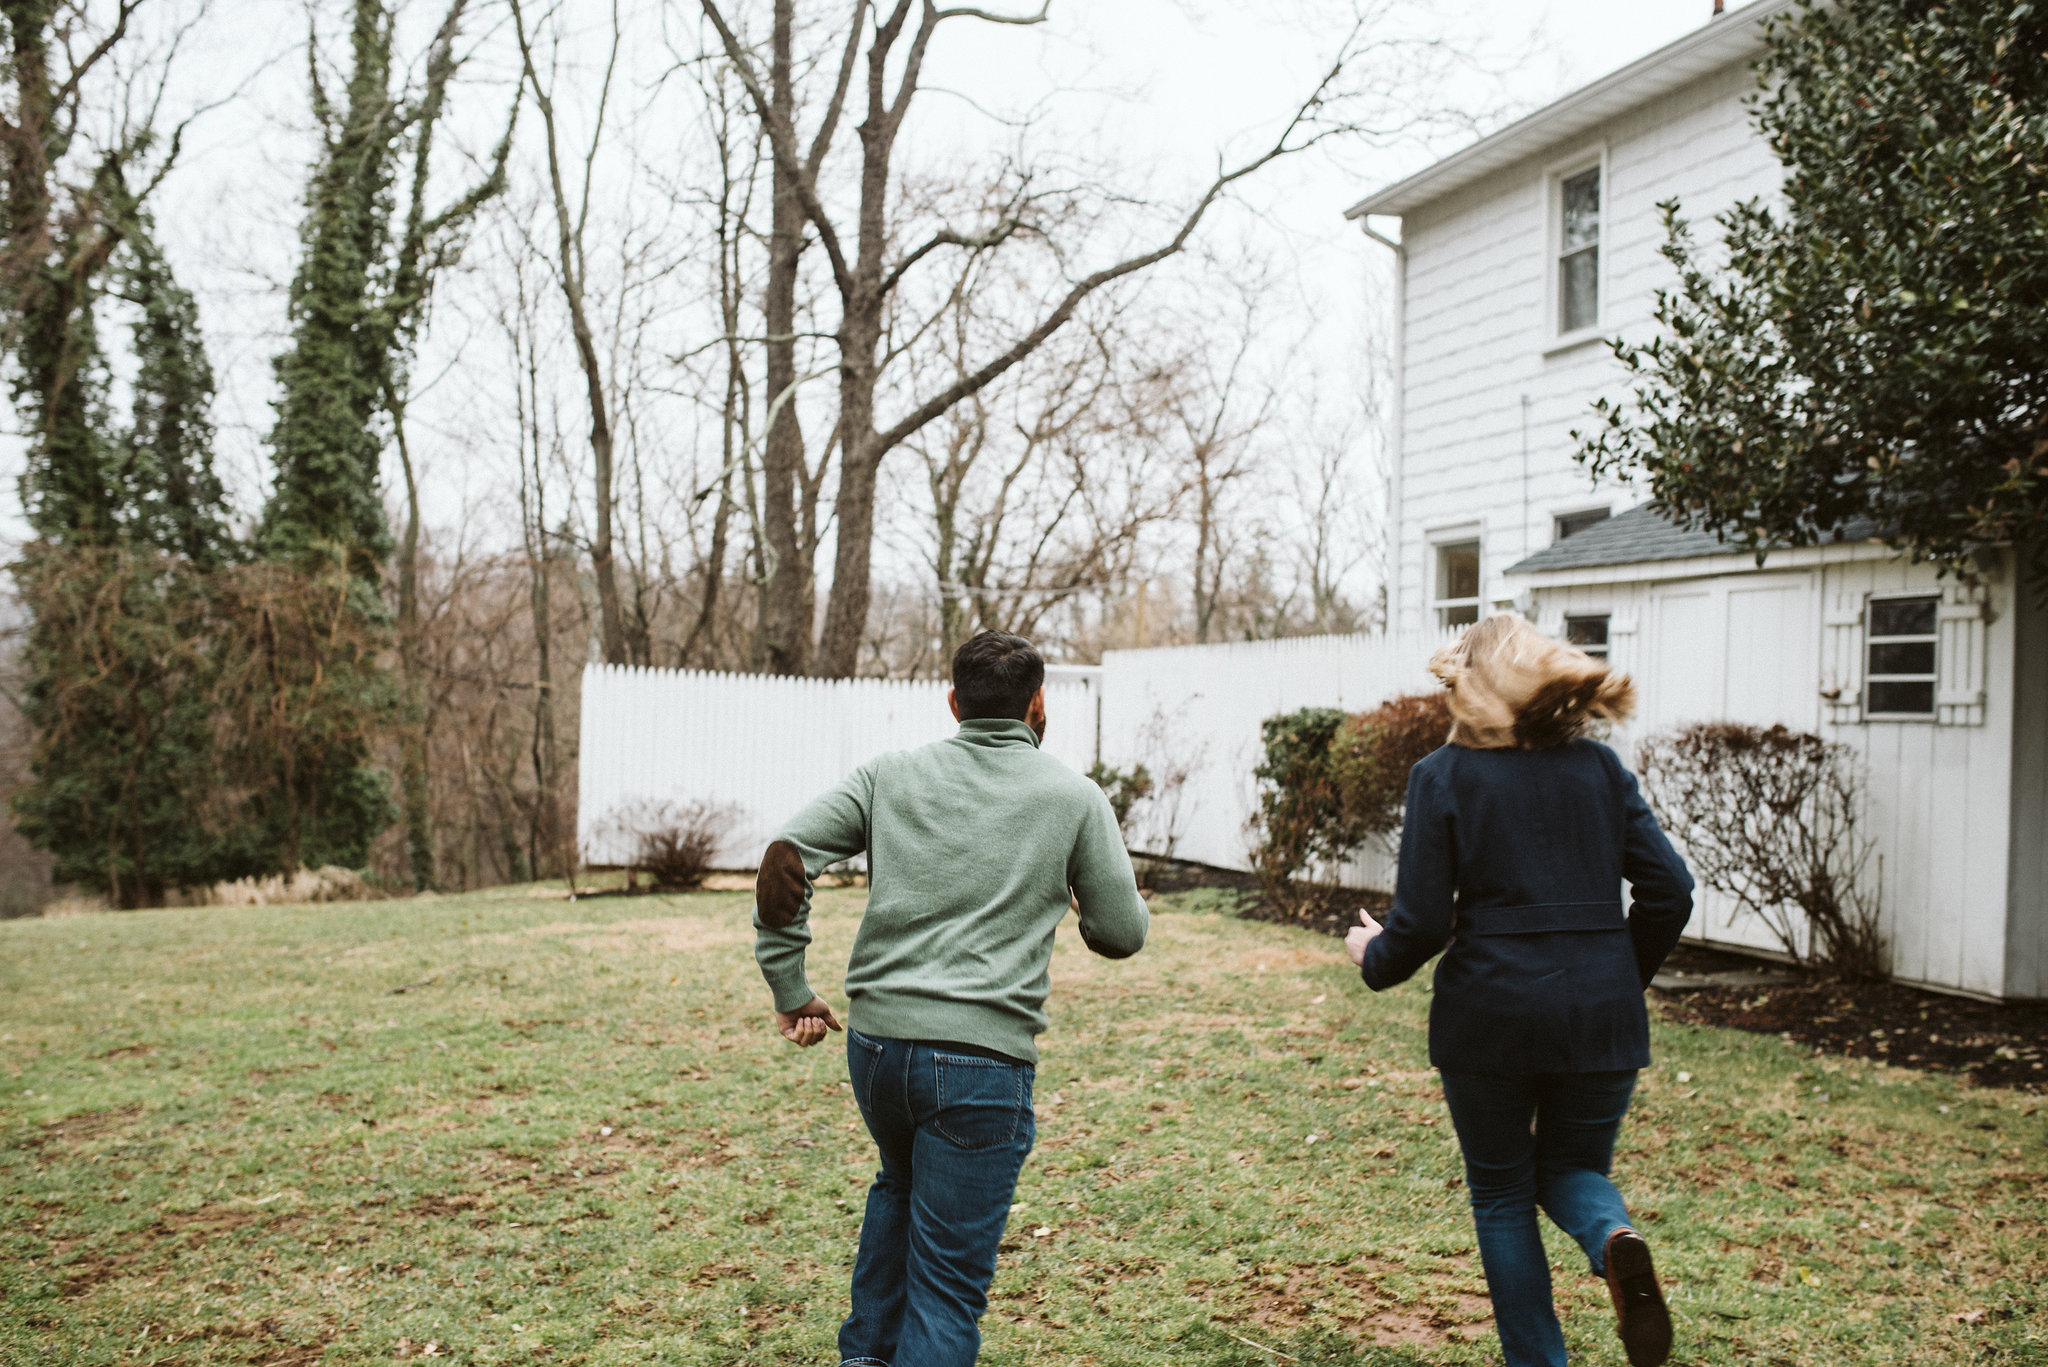 Engagement Photos, Ellicott City, Maryland Wedding Photographer, Winter, Overhills Mansion, Indian American, Historical, Classic, Outdoor, Bride and Groom Running